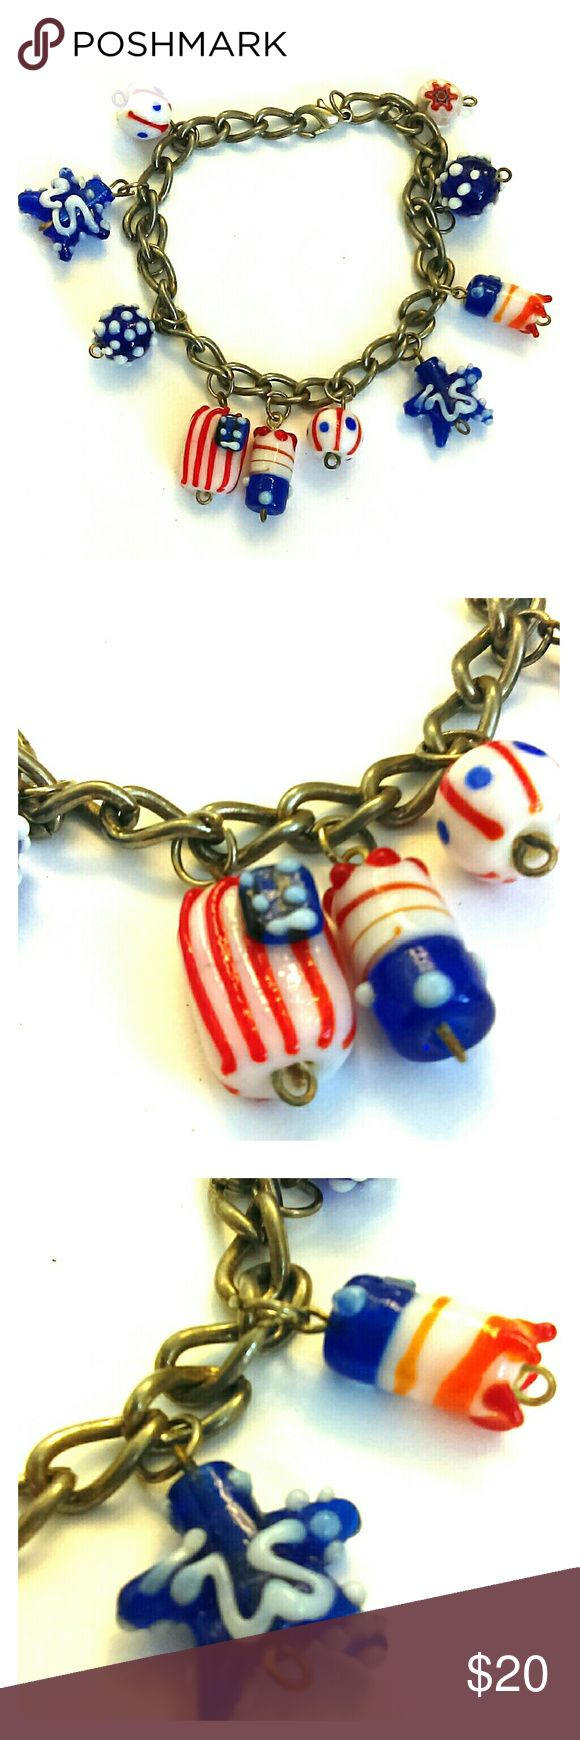 """USA Patriotic hand-crafted glass charm bracelet Red, white, and blue around your wrist in a series of ten  handcrafted glass beads in patriotic designs. Perfect for Memorial Day, Flag Day, Fourth of July, and Labor Day, as well as everyday use.   8"""" on antiqued-silver chain with lobster-claw clasp.   Bundle for additional savings. Jewelry Bracelets"""